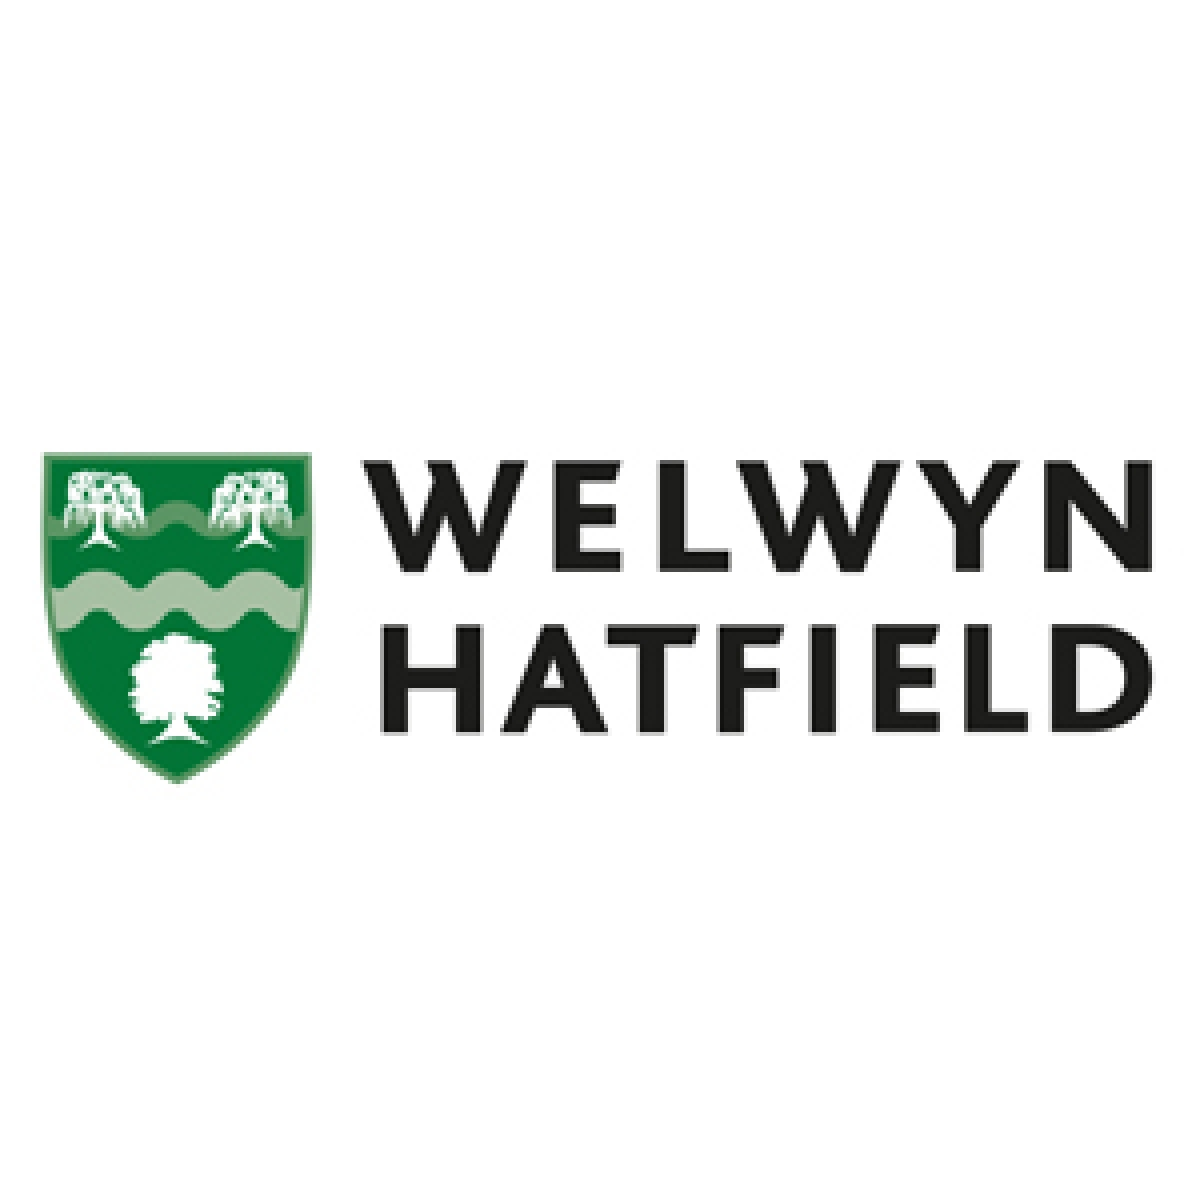 Maydencroft awarded the Welwyn Hatfield Borough Council Arboricultural Services Contract